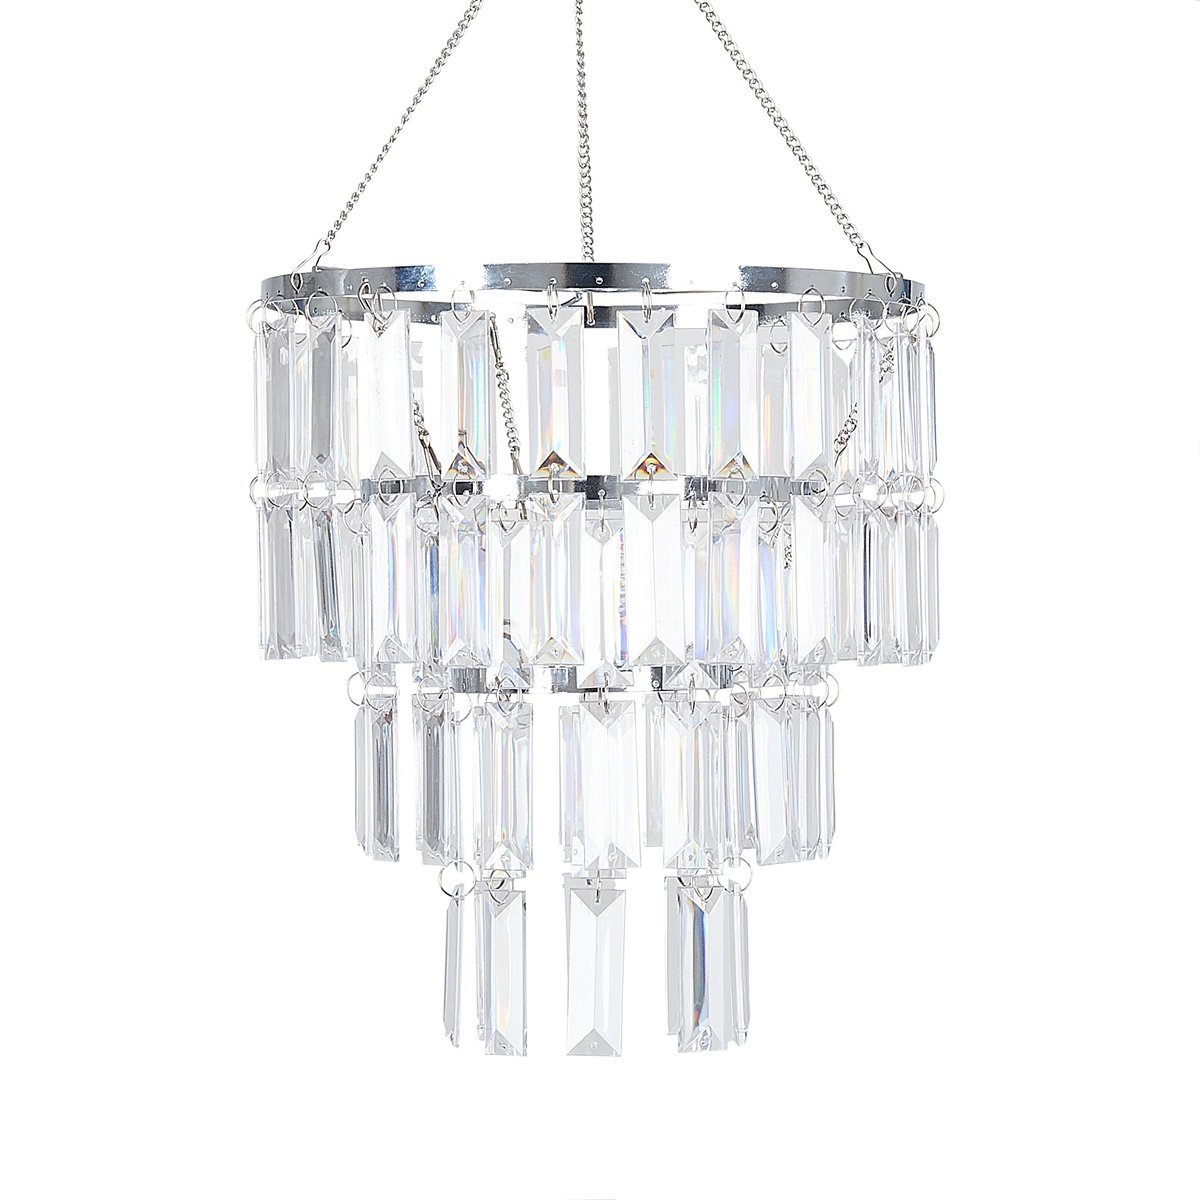 FlavorThings Faux Crystal Lampshade-Clear Rectangle Acrylic Pendant Light Lamp Shade,10.25'' Diam 11.5'' Tall,Great idea for Wedding Chandeliers Centerpieces Decoration and Any Event Party Home Decor